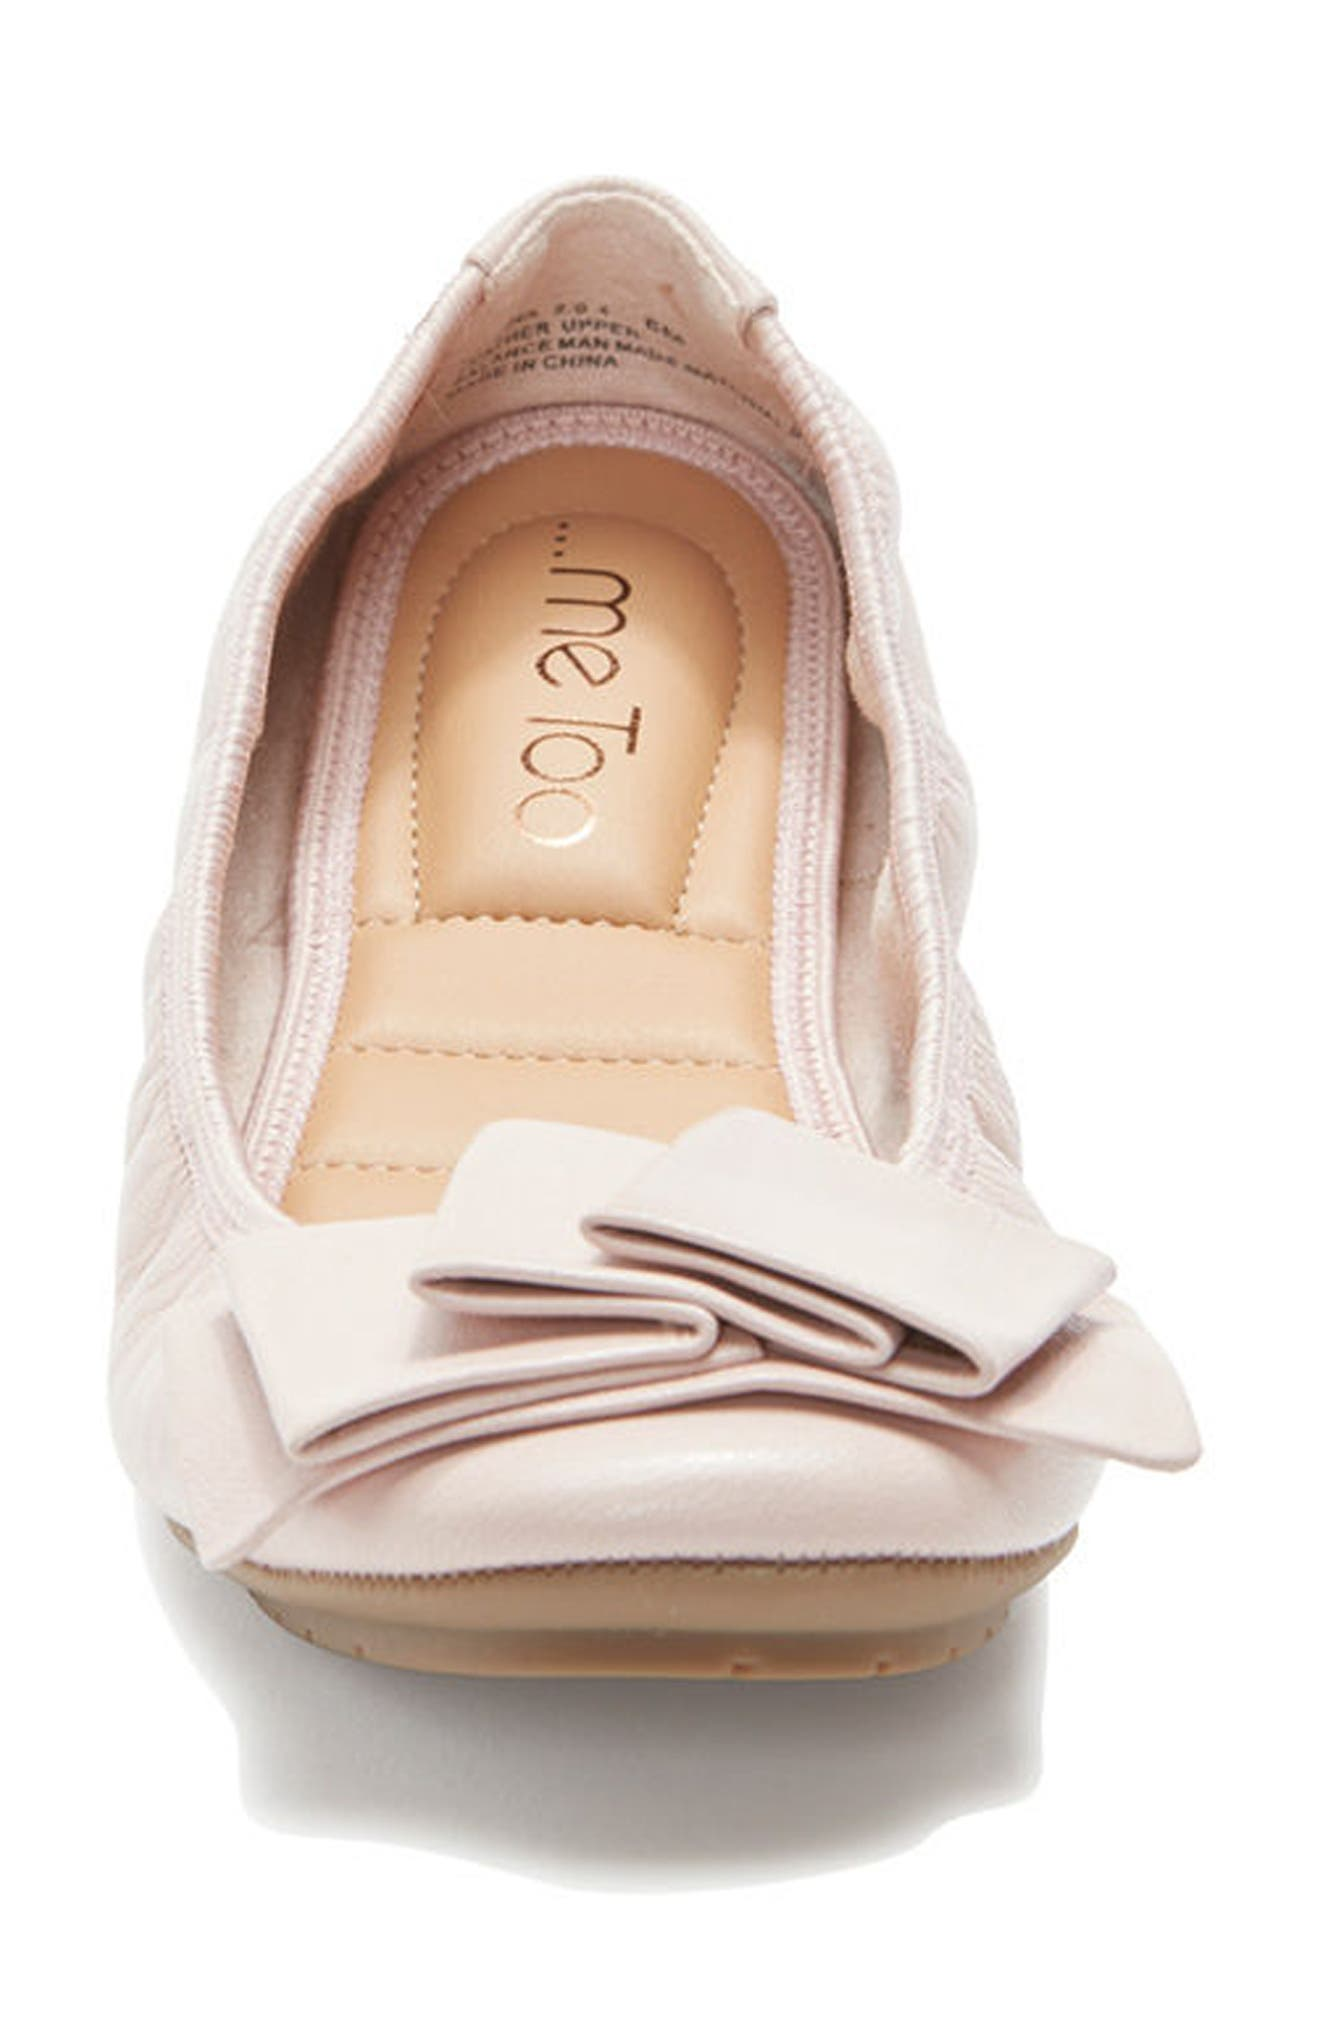 'Lilyana 2.0' Flat,                             Alternate thumbnail 4, color,                             Pink Leather